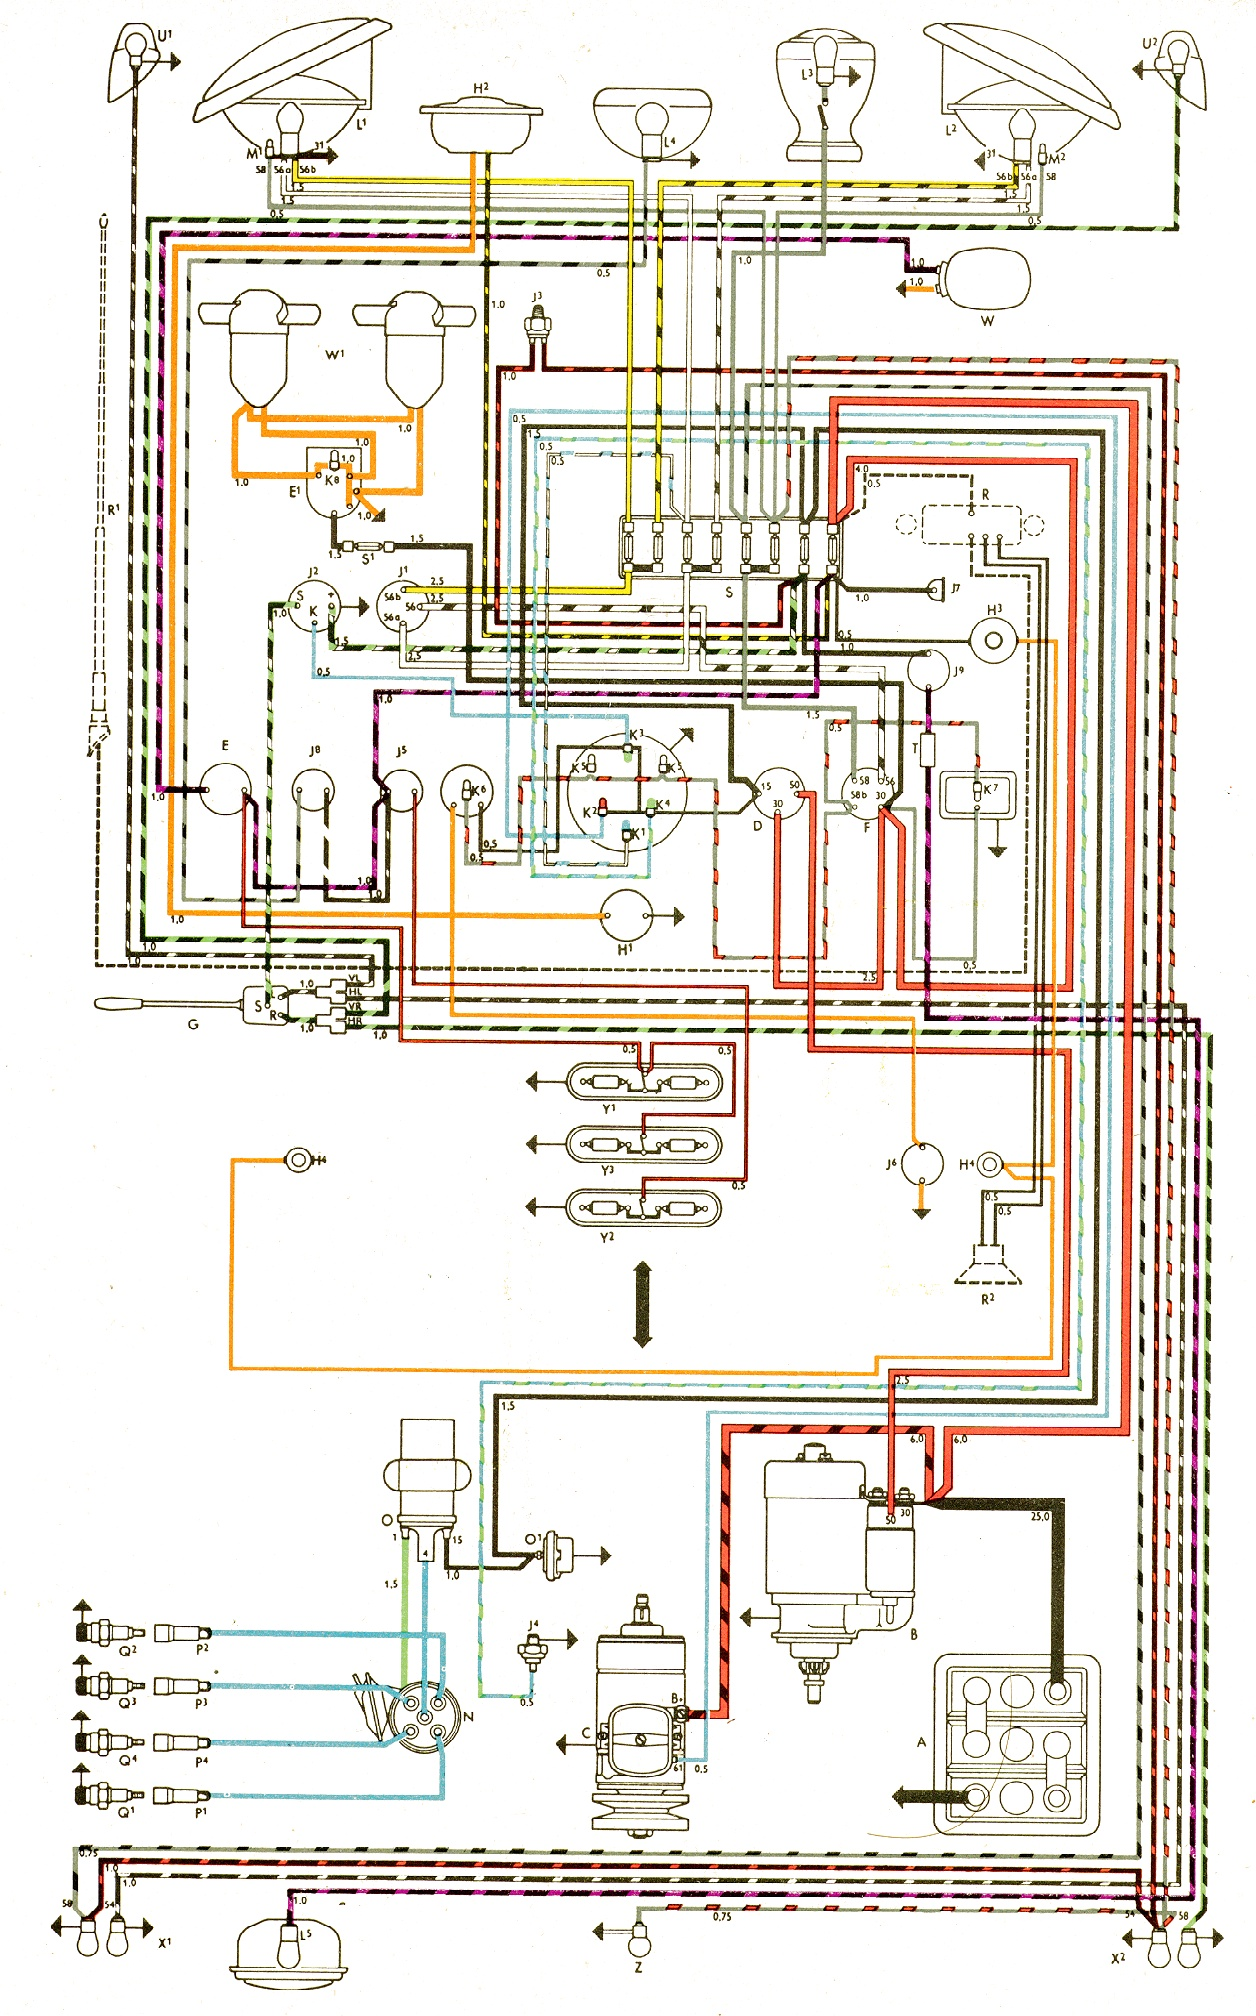 71 vw bus wiring diagram poe cat5 76 wire auto